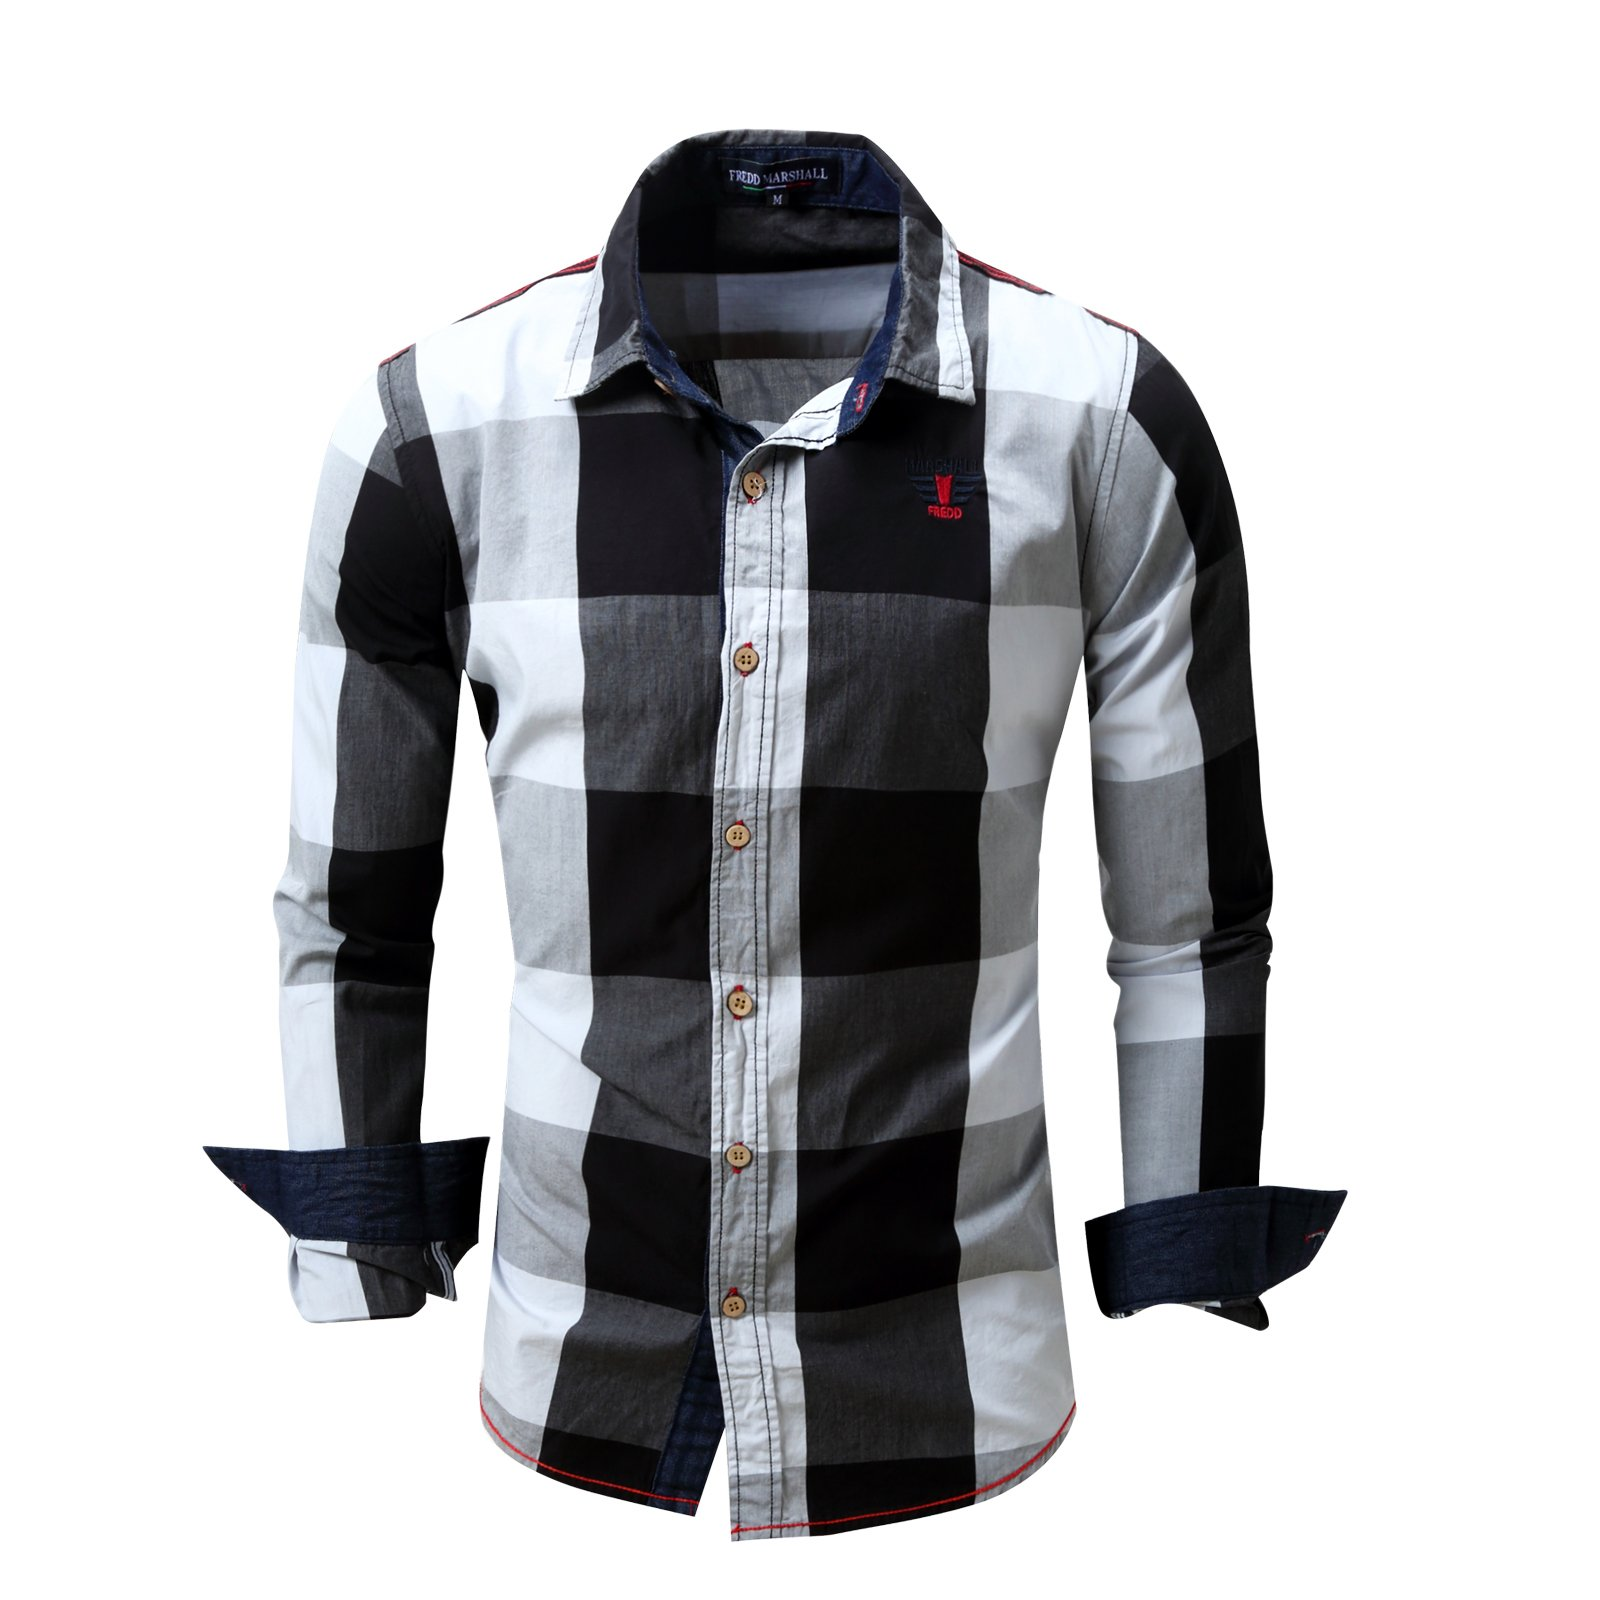 FREDD MARSHALL Men's 100% Cotton Long Sleeve Slim fit Plaid Casual Fashion Business Style Shirts (M, Black)